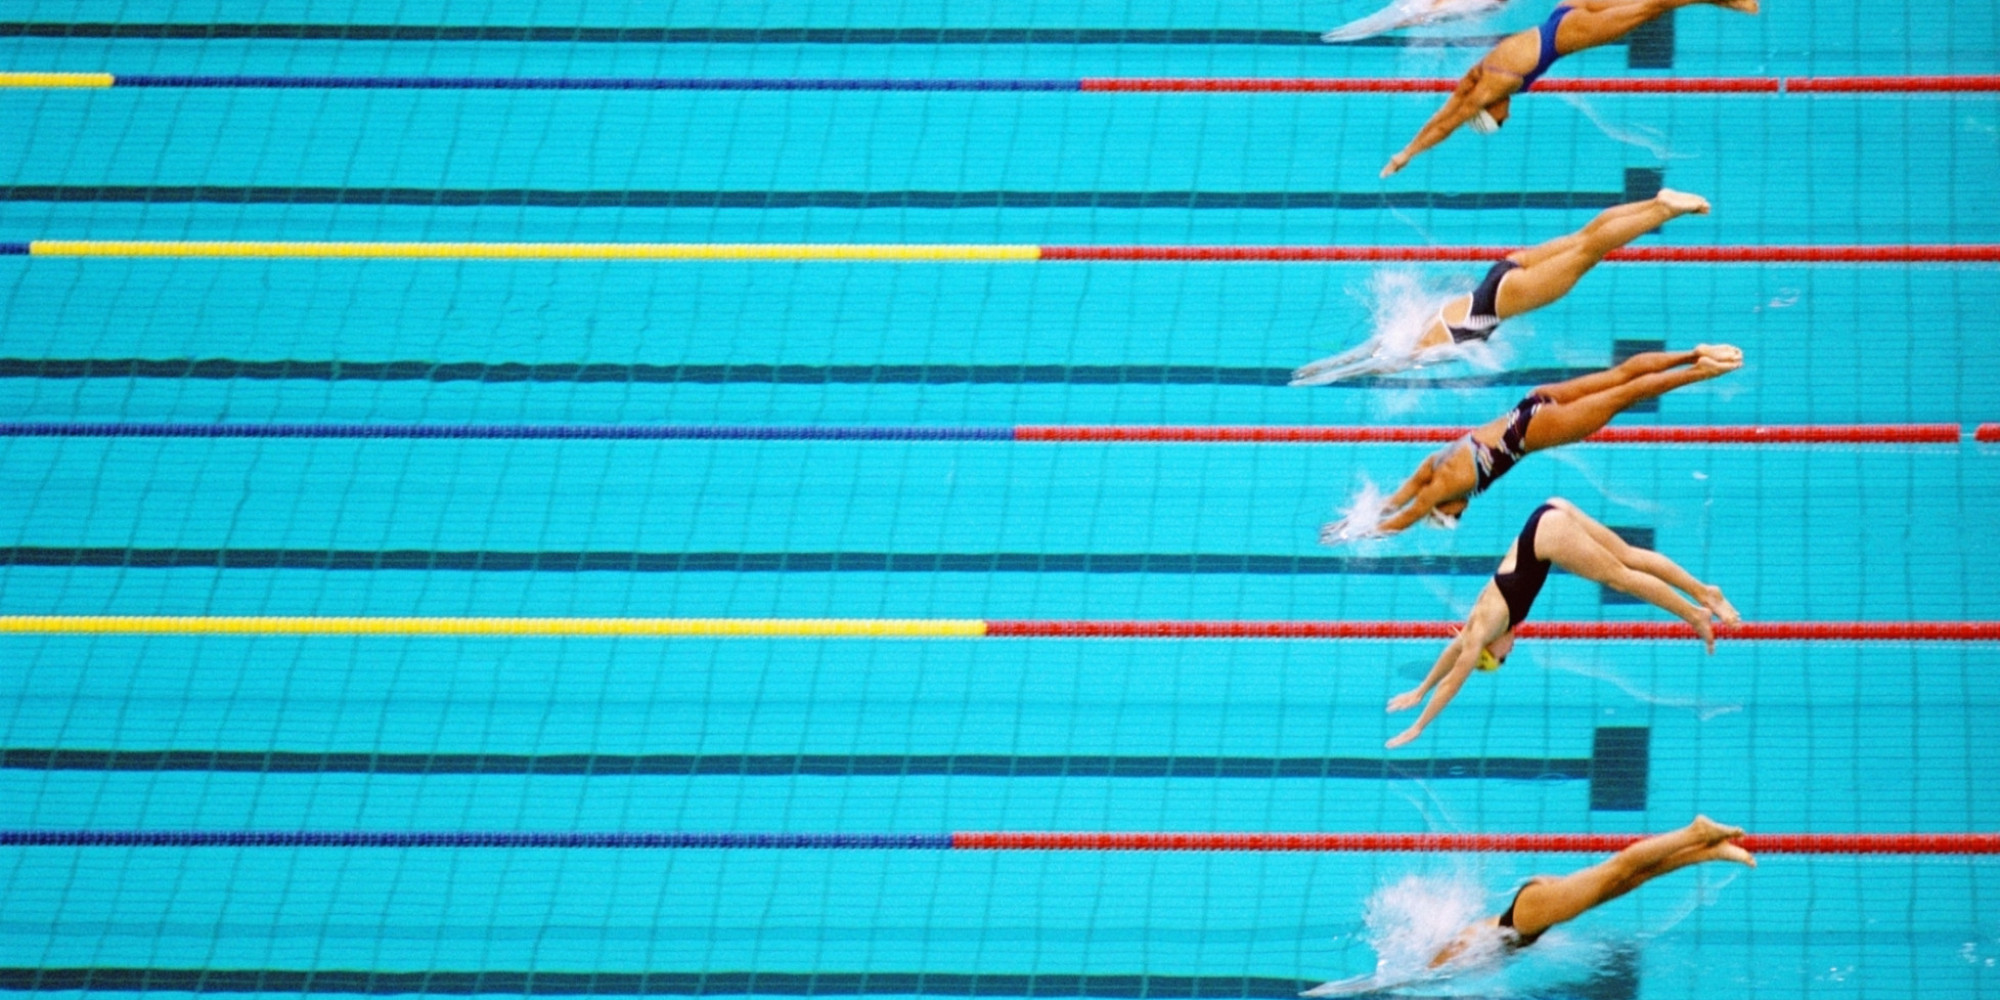 Pool chemicals may explain higher rates of asthma among endurance swimmers huffpost for Olympic swimming pool pictures